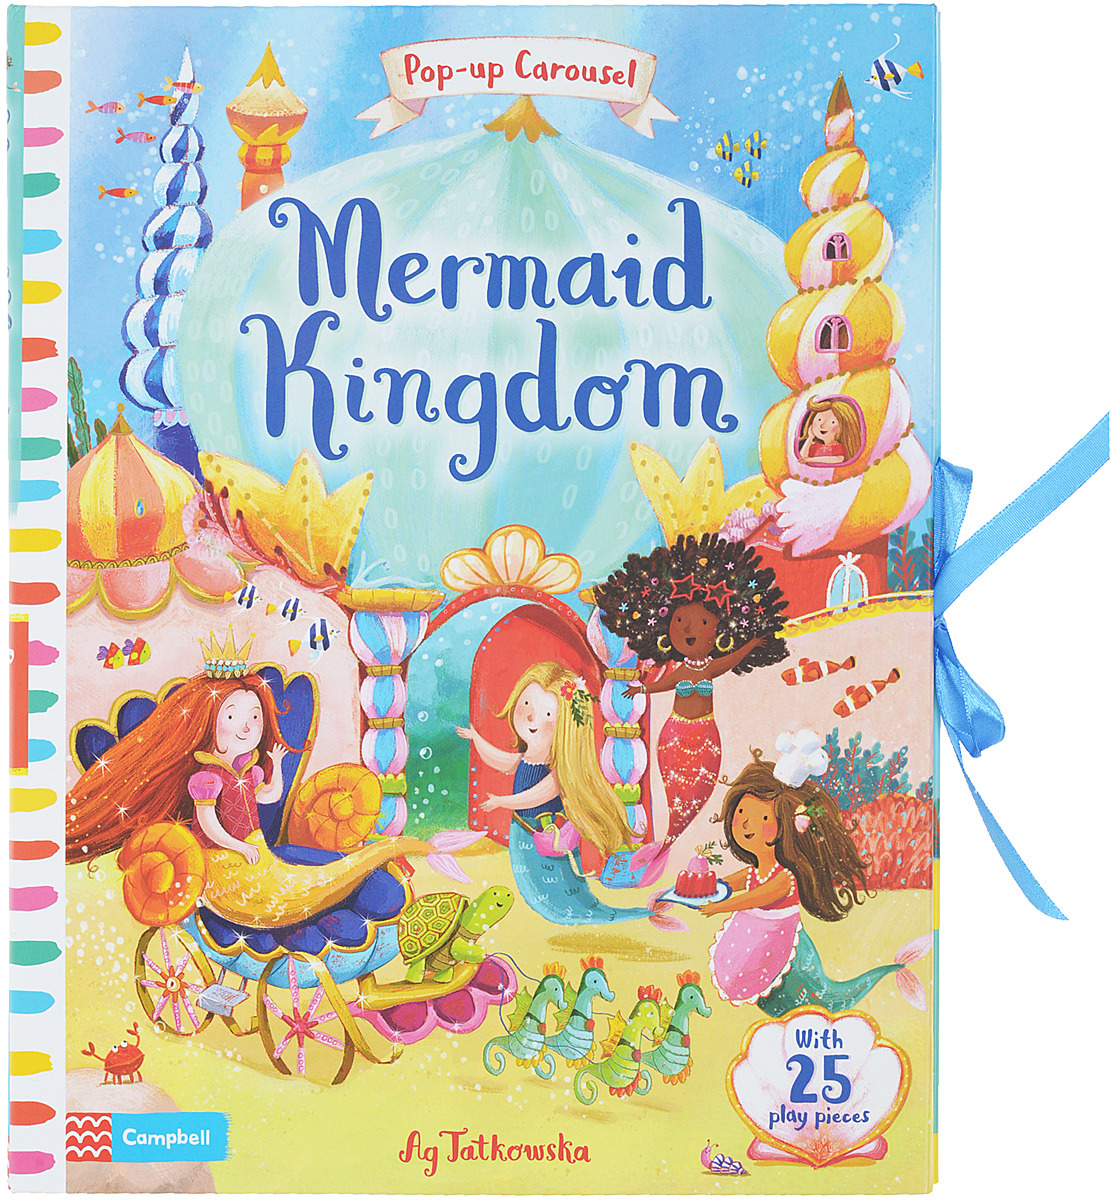 Mermaid Kingdom adrian arnold the internet for the older and wiser get up and running safely on the web